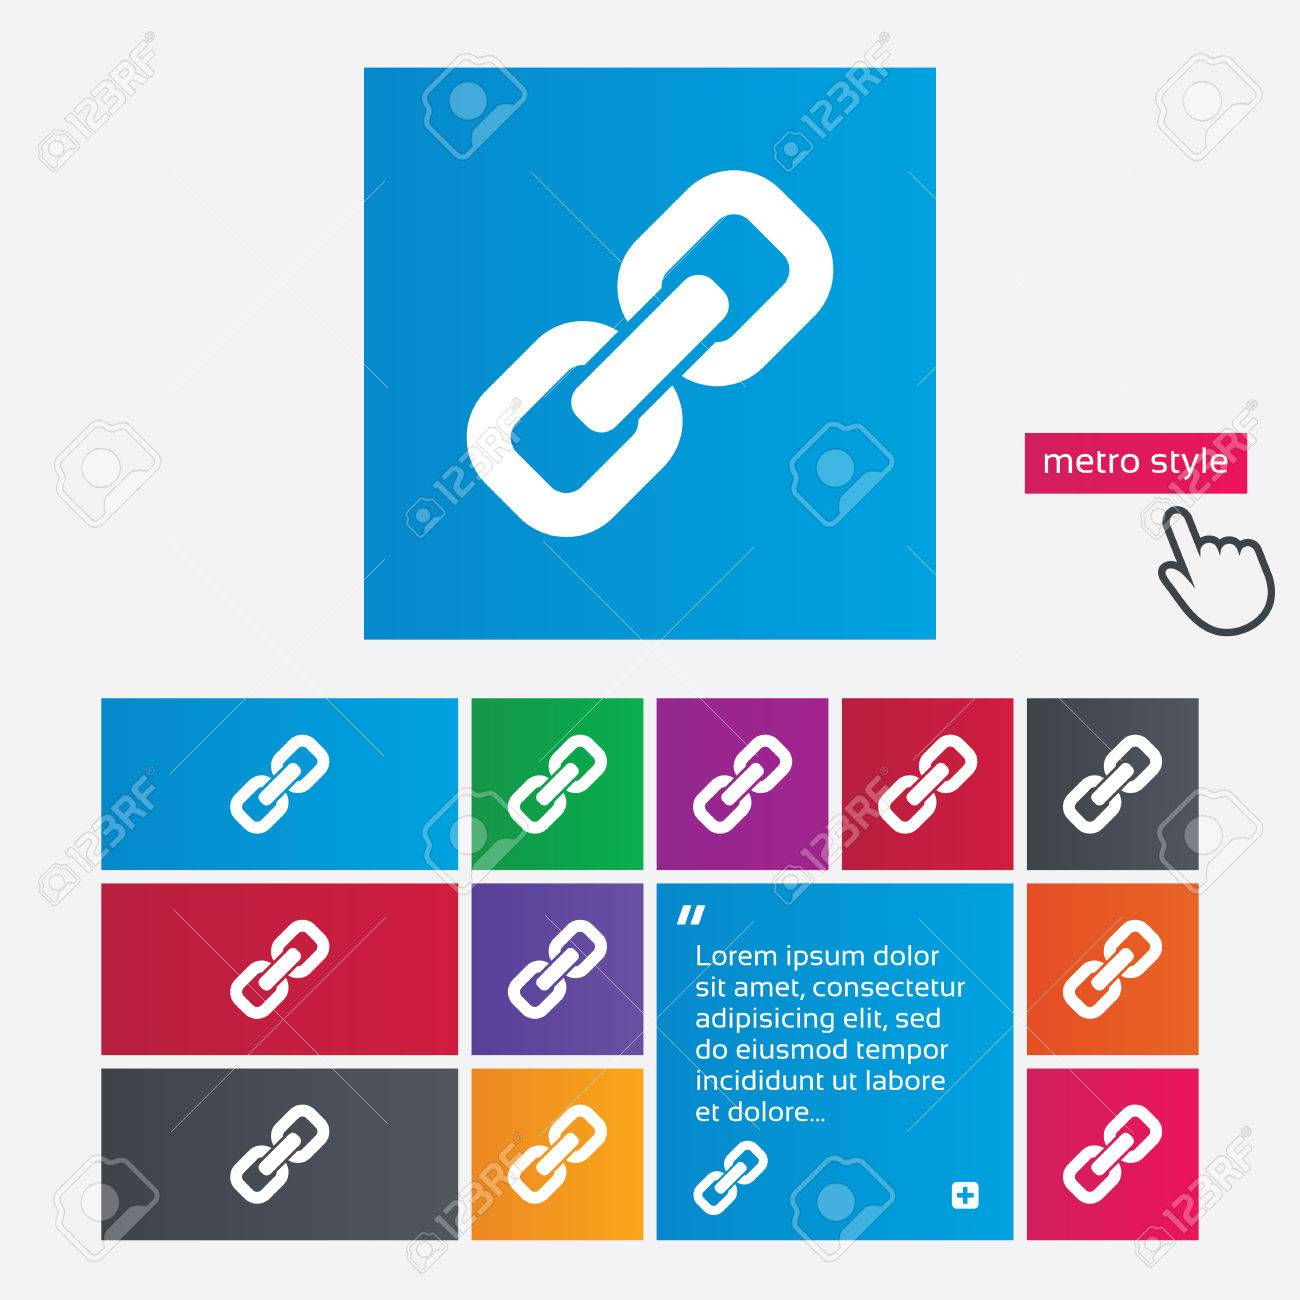 Link sign icon. Hyperlink chain symbol. Metro style buttons. Modern interface website buttons with hand cursor pointer. Vector Stock Vector - 27513722